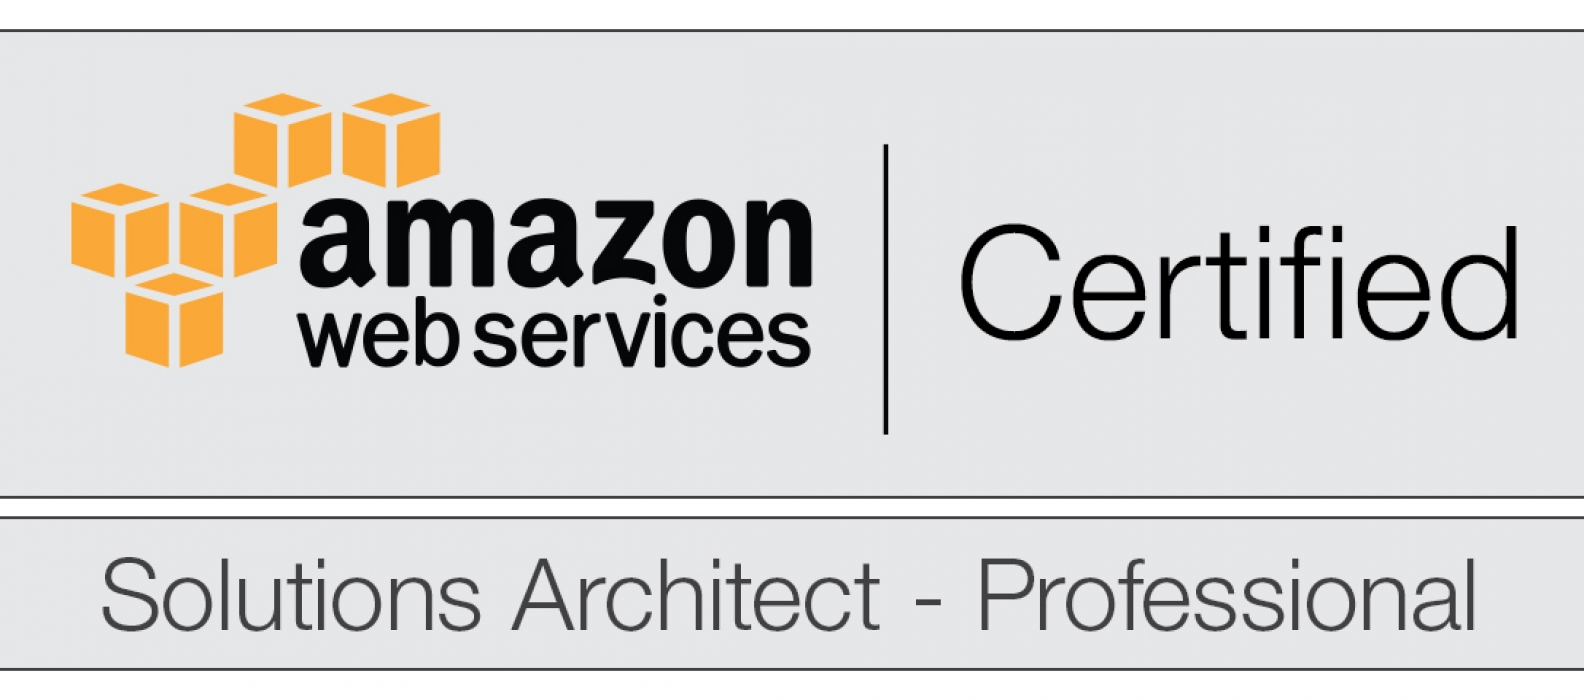 How I Passed the AWS Solutions Architect Professional Exam